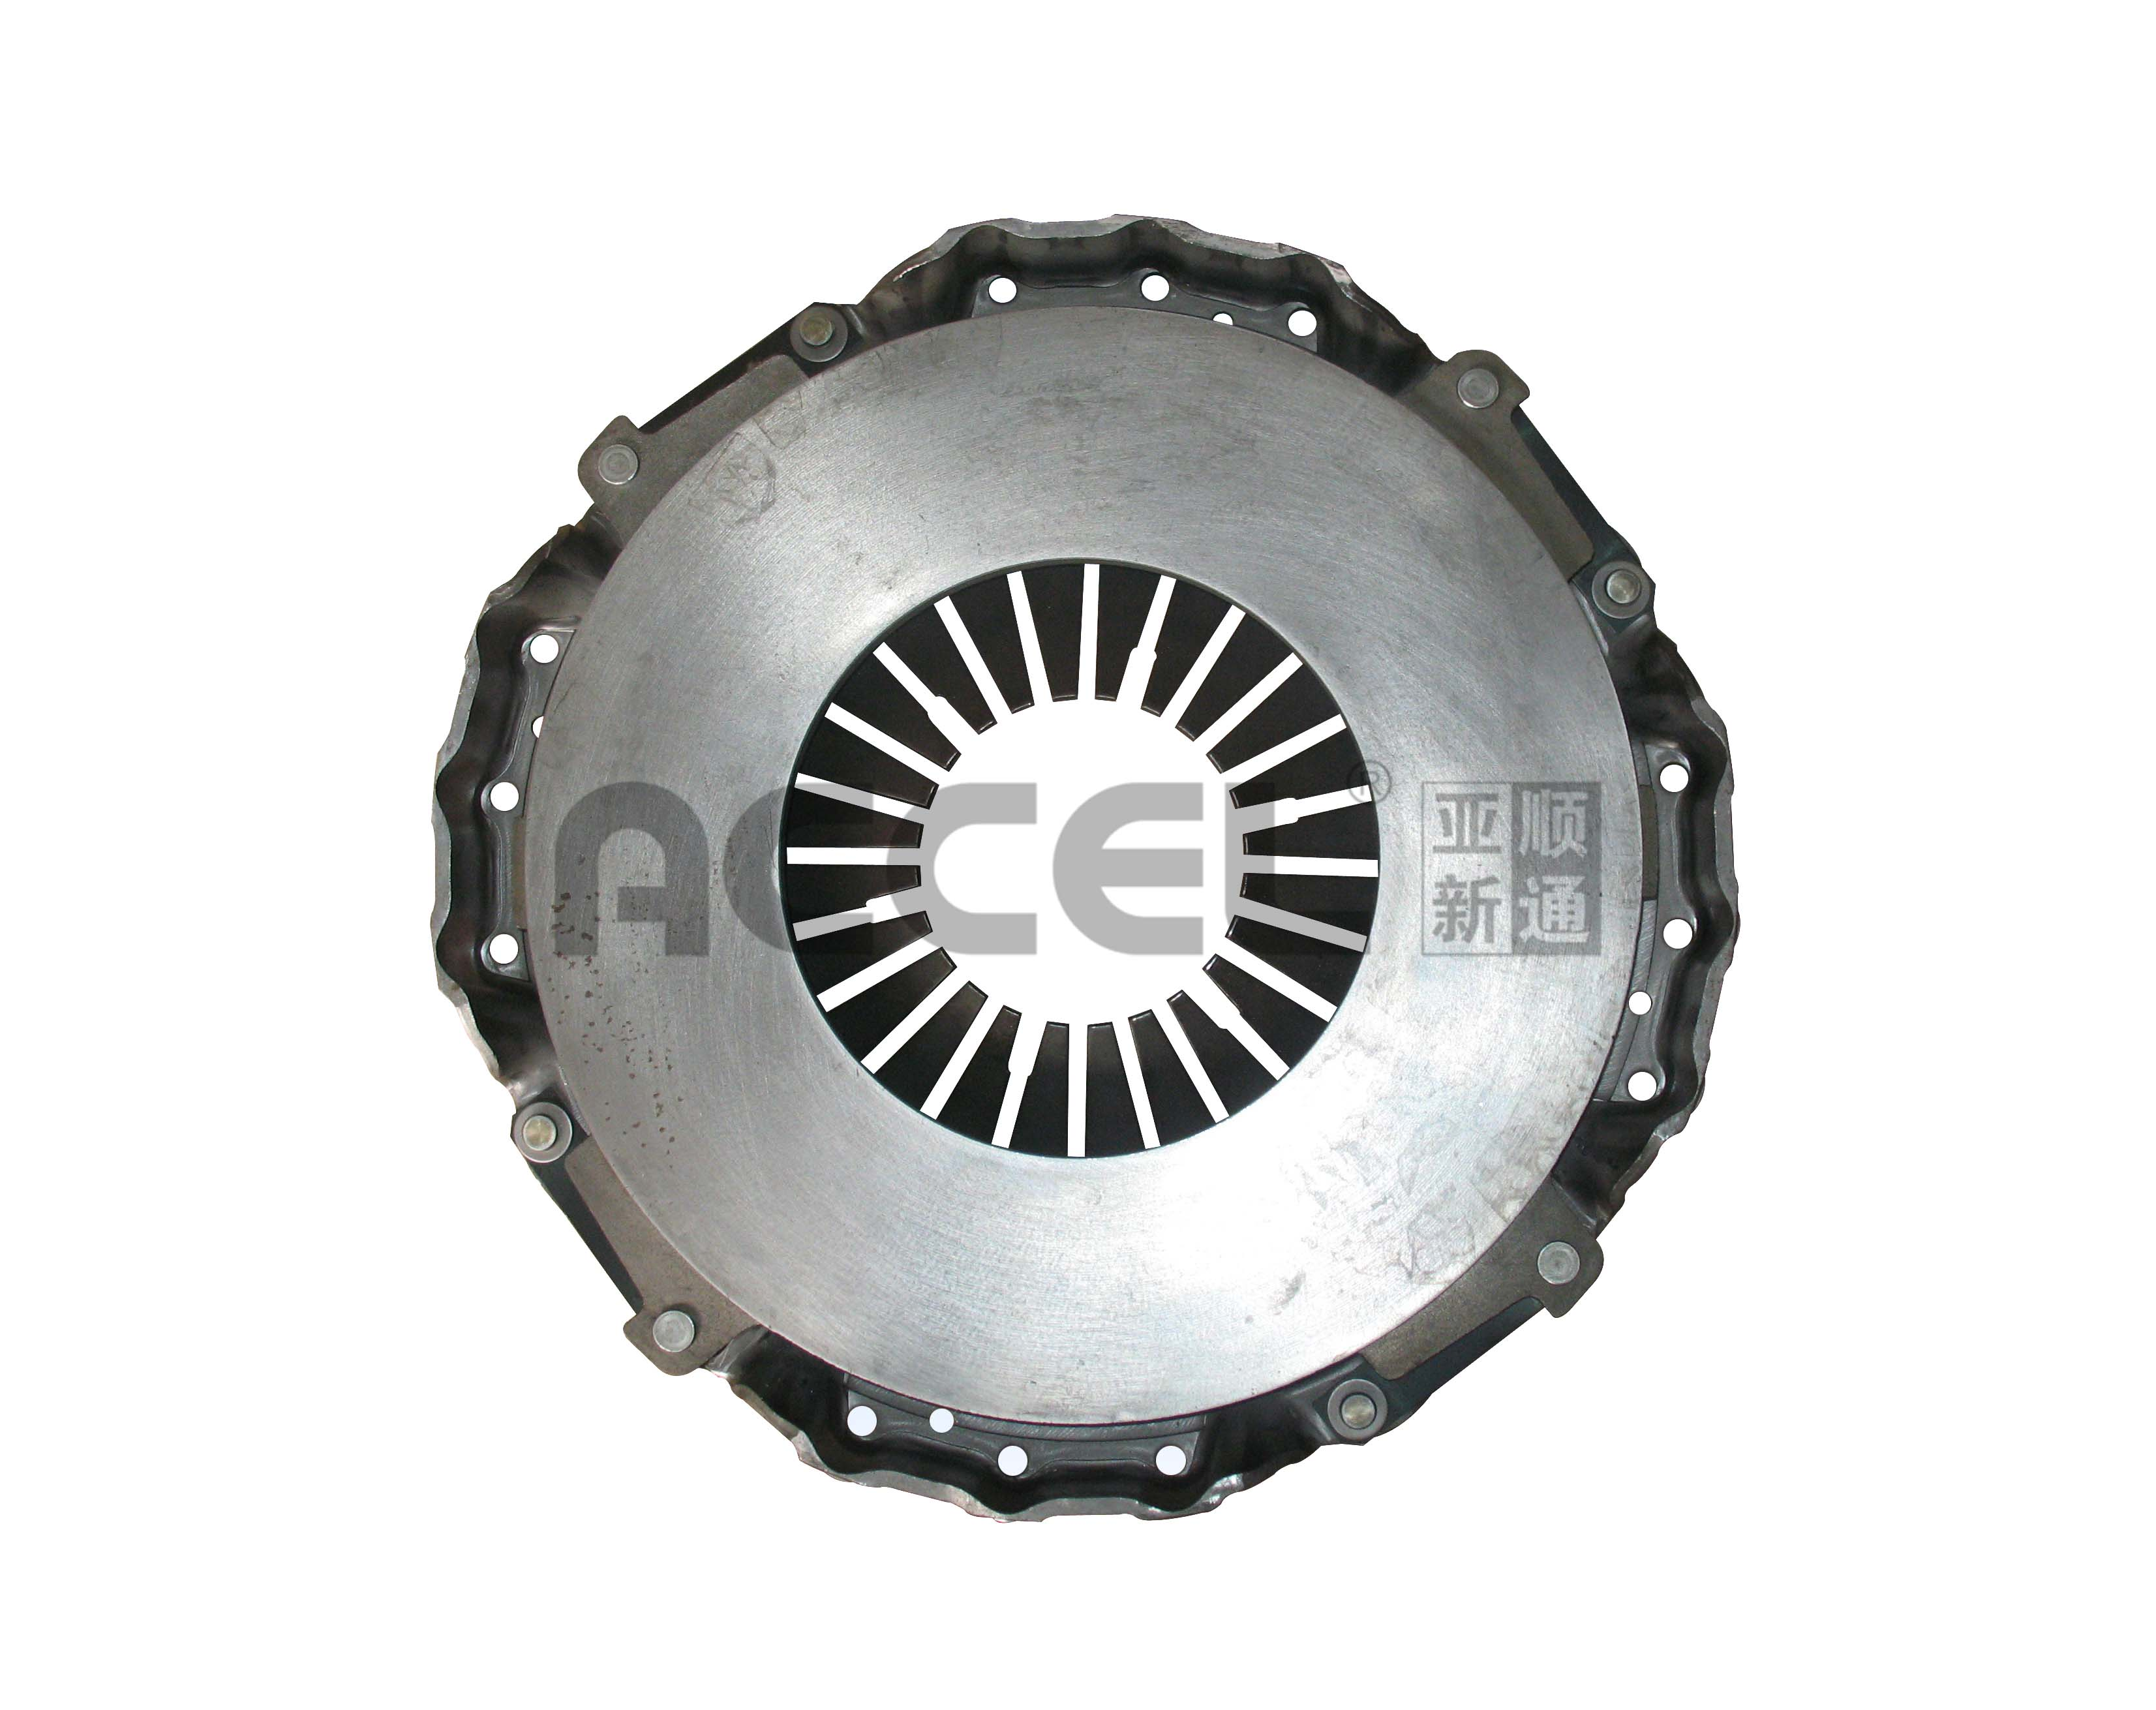 Clutch Cover/OE:1335281/400*215*450/CSN-005/Scania/LY424/3482 112 031